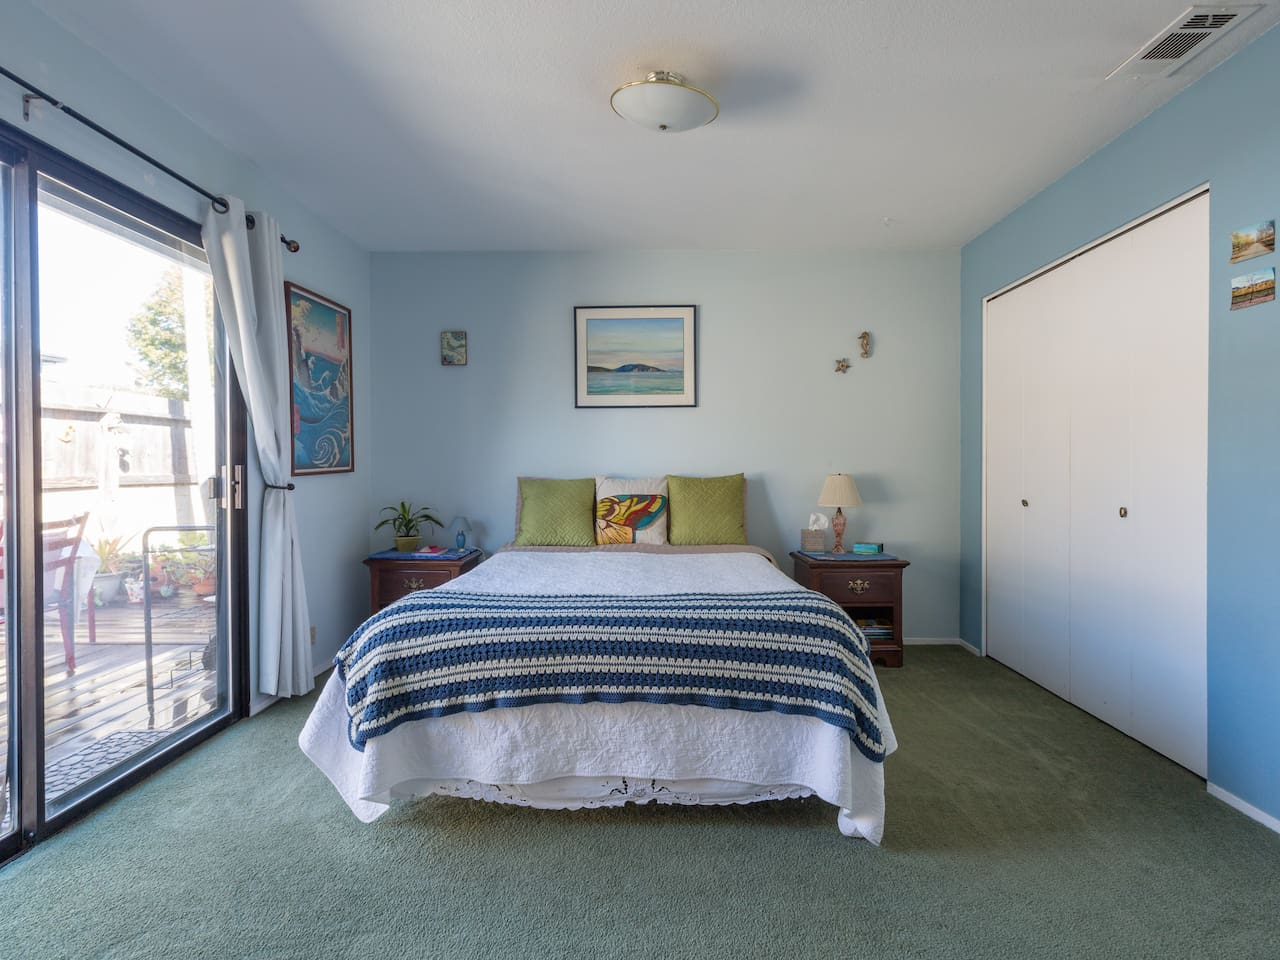 Master bedroom. Comfy queen bed with pillow top pad on top of mattress.